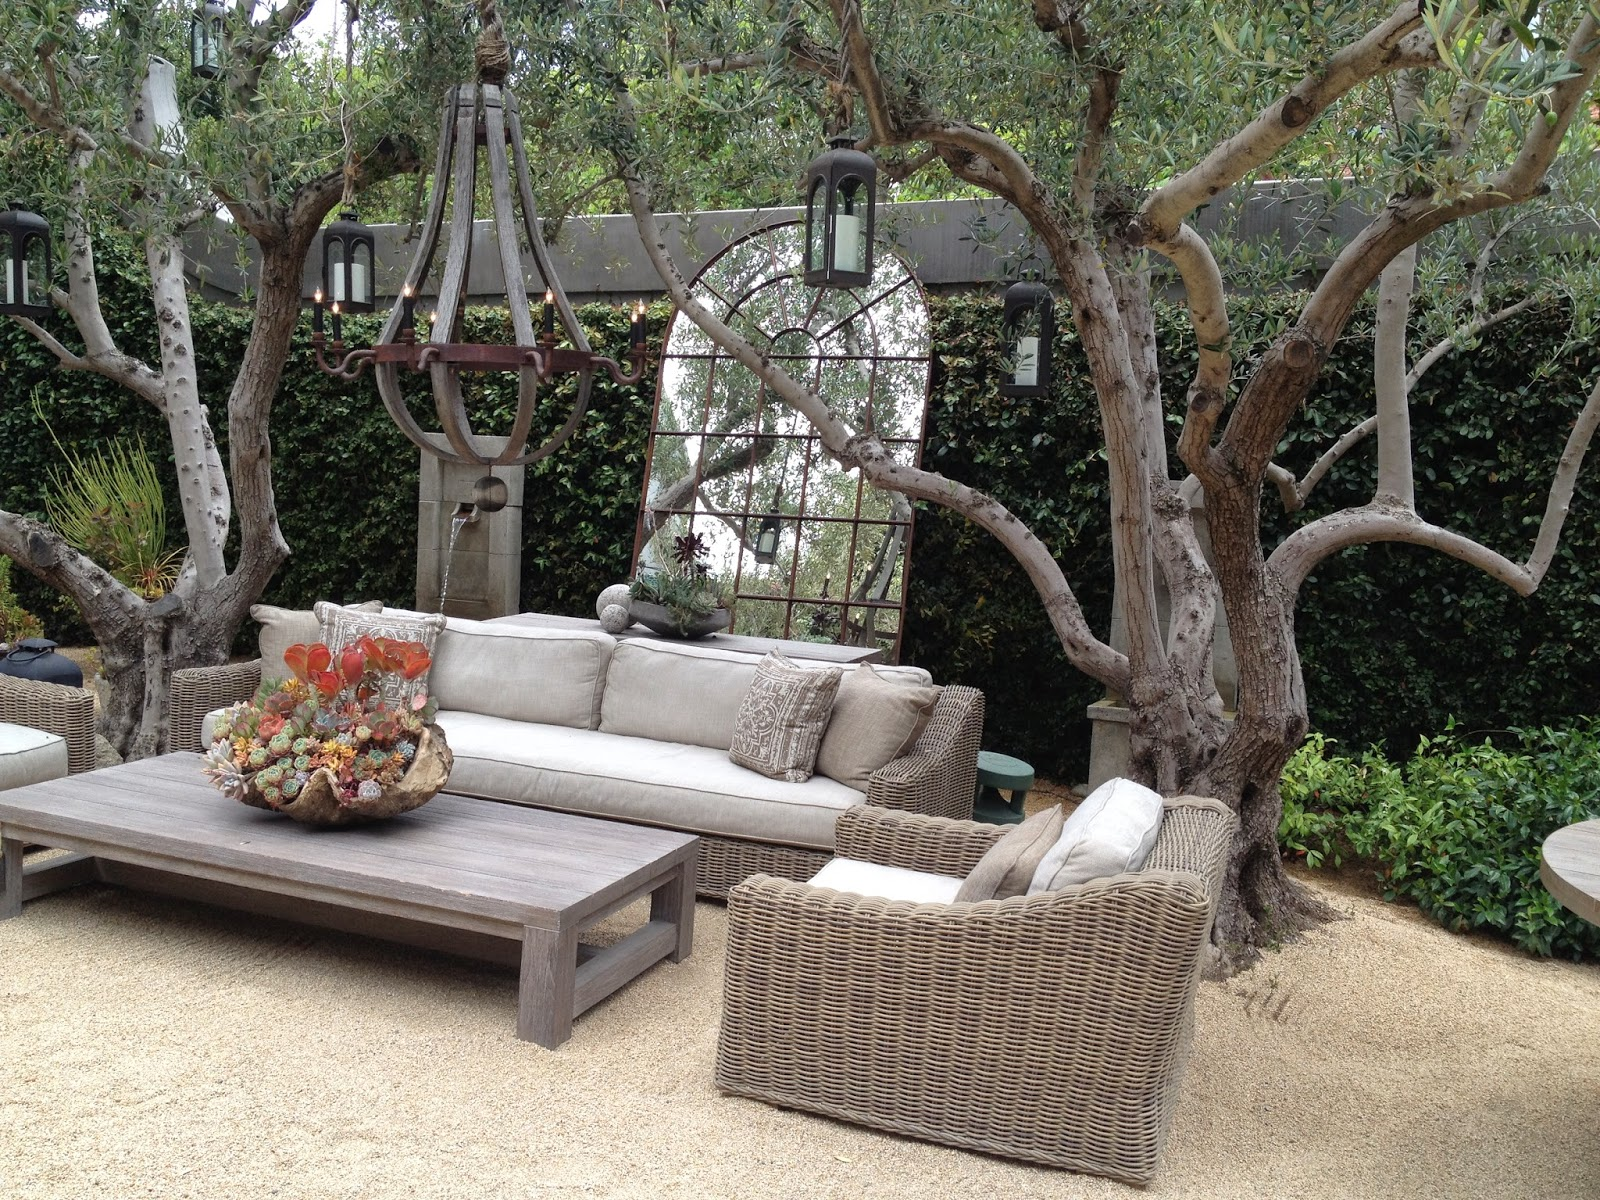 Vignette Design Restoration Hardware At The Design Center